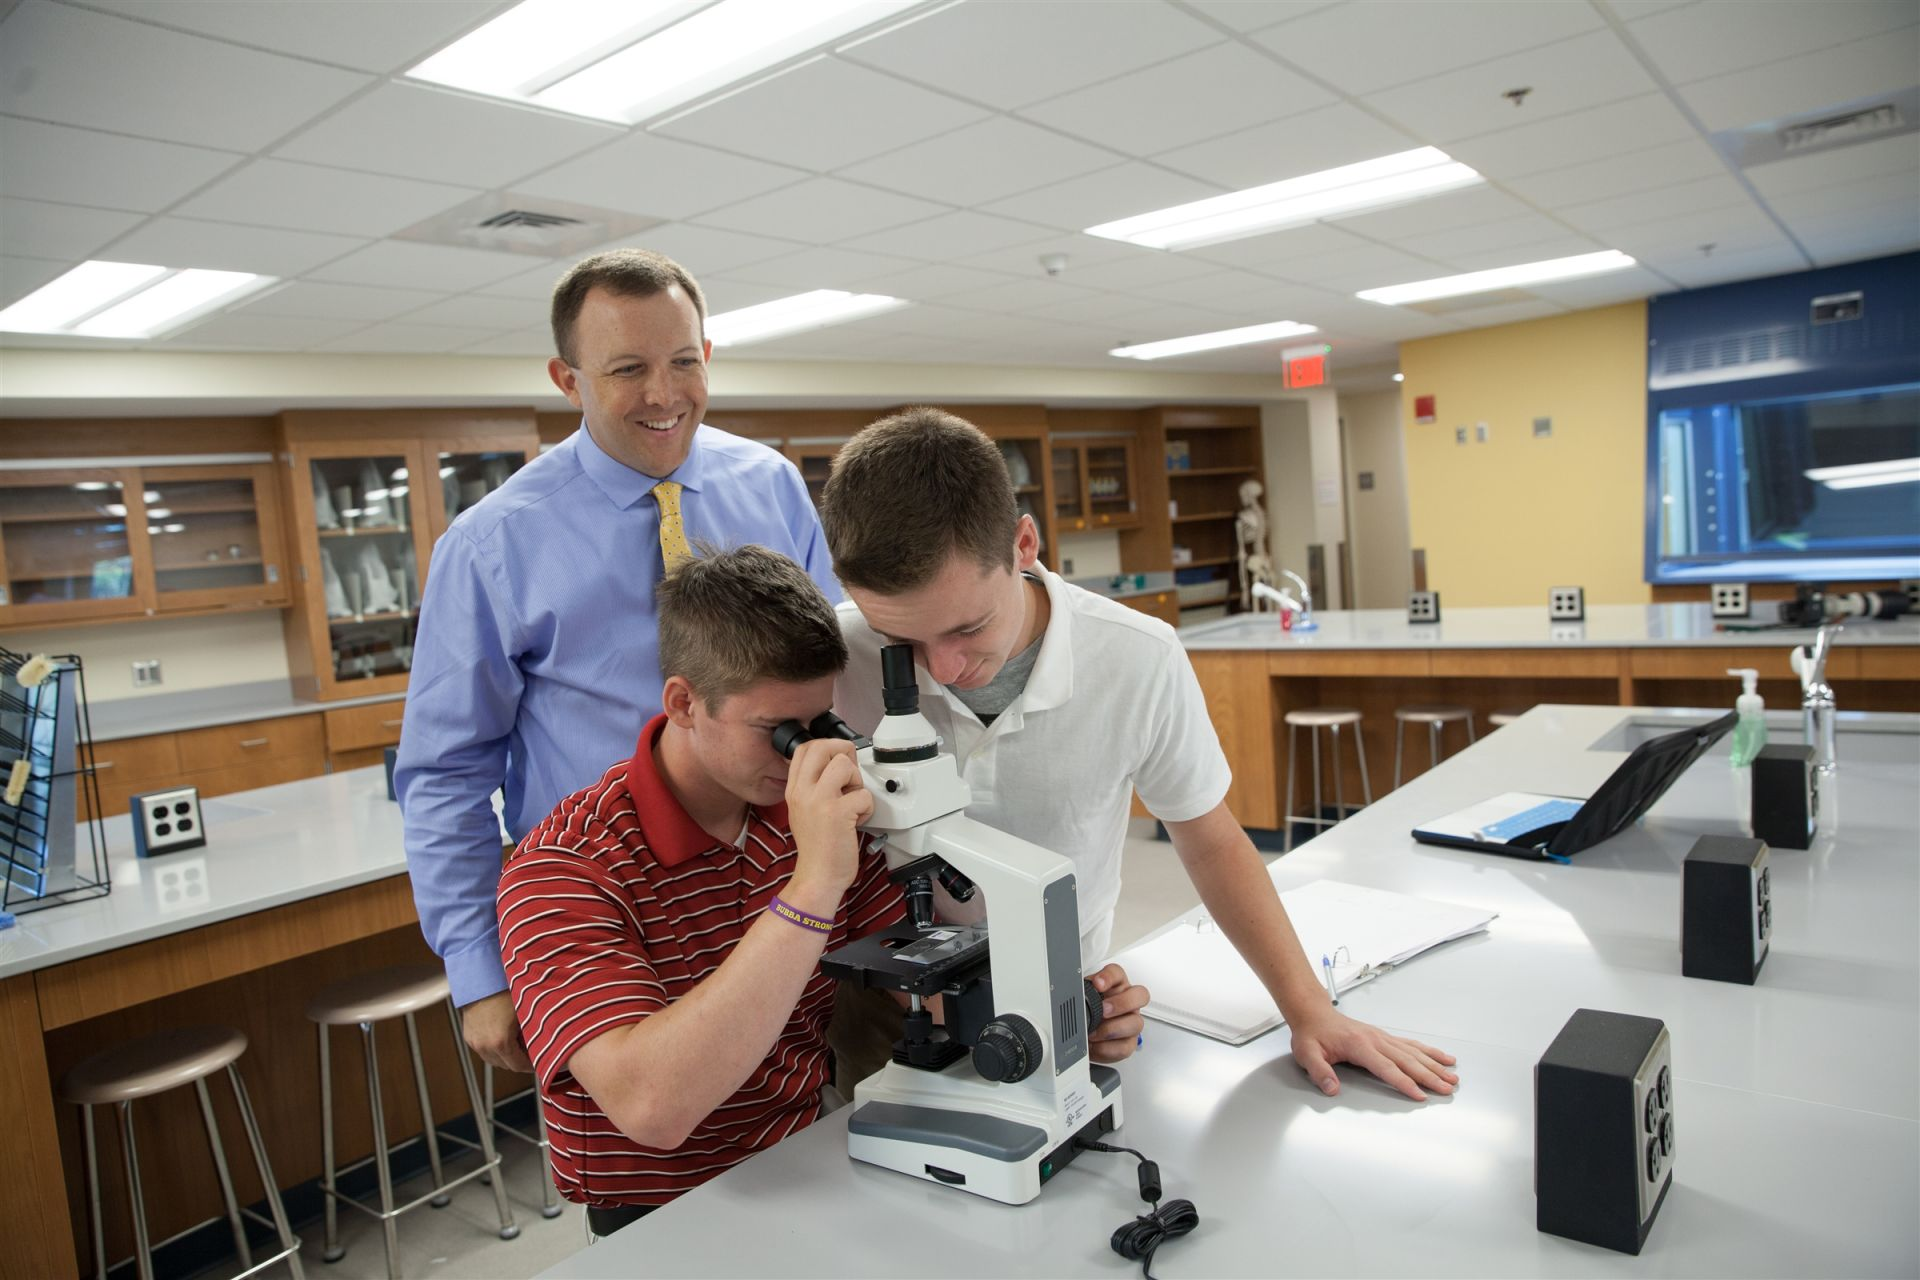 There are 6 science labs on the Xaverian campus.